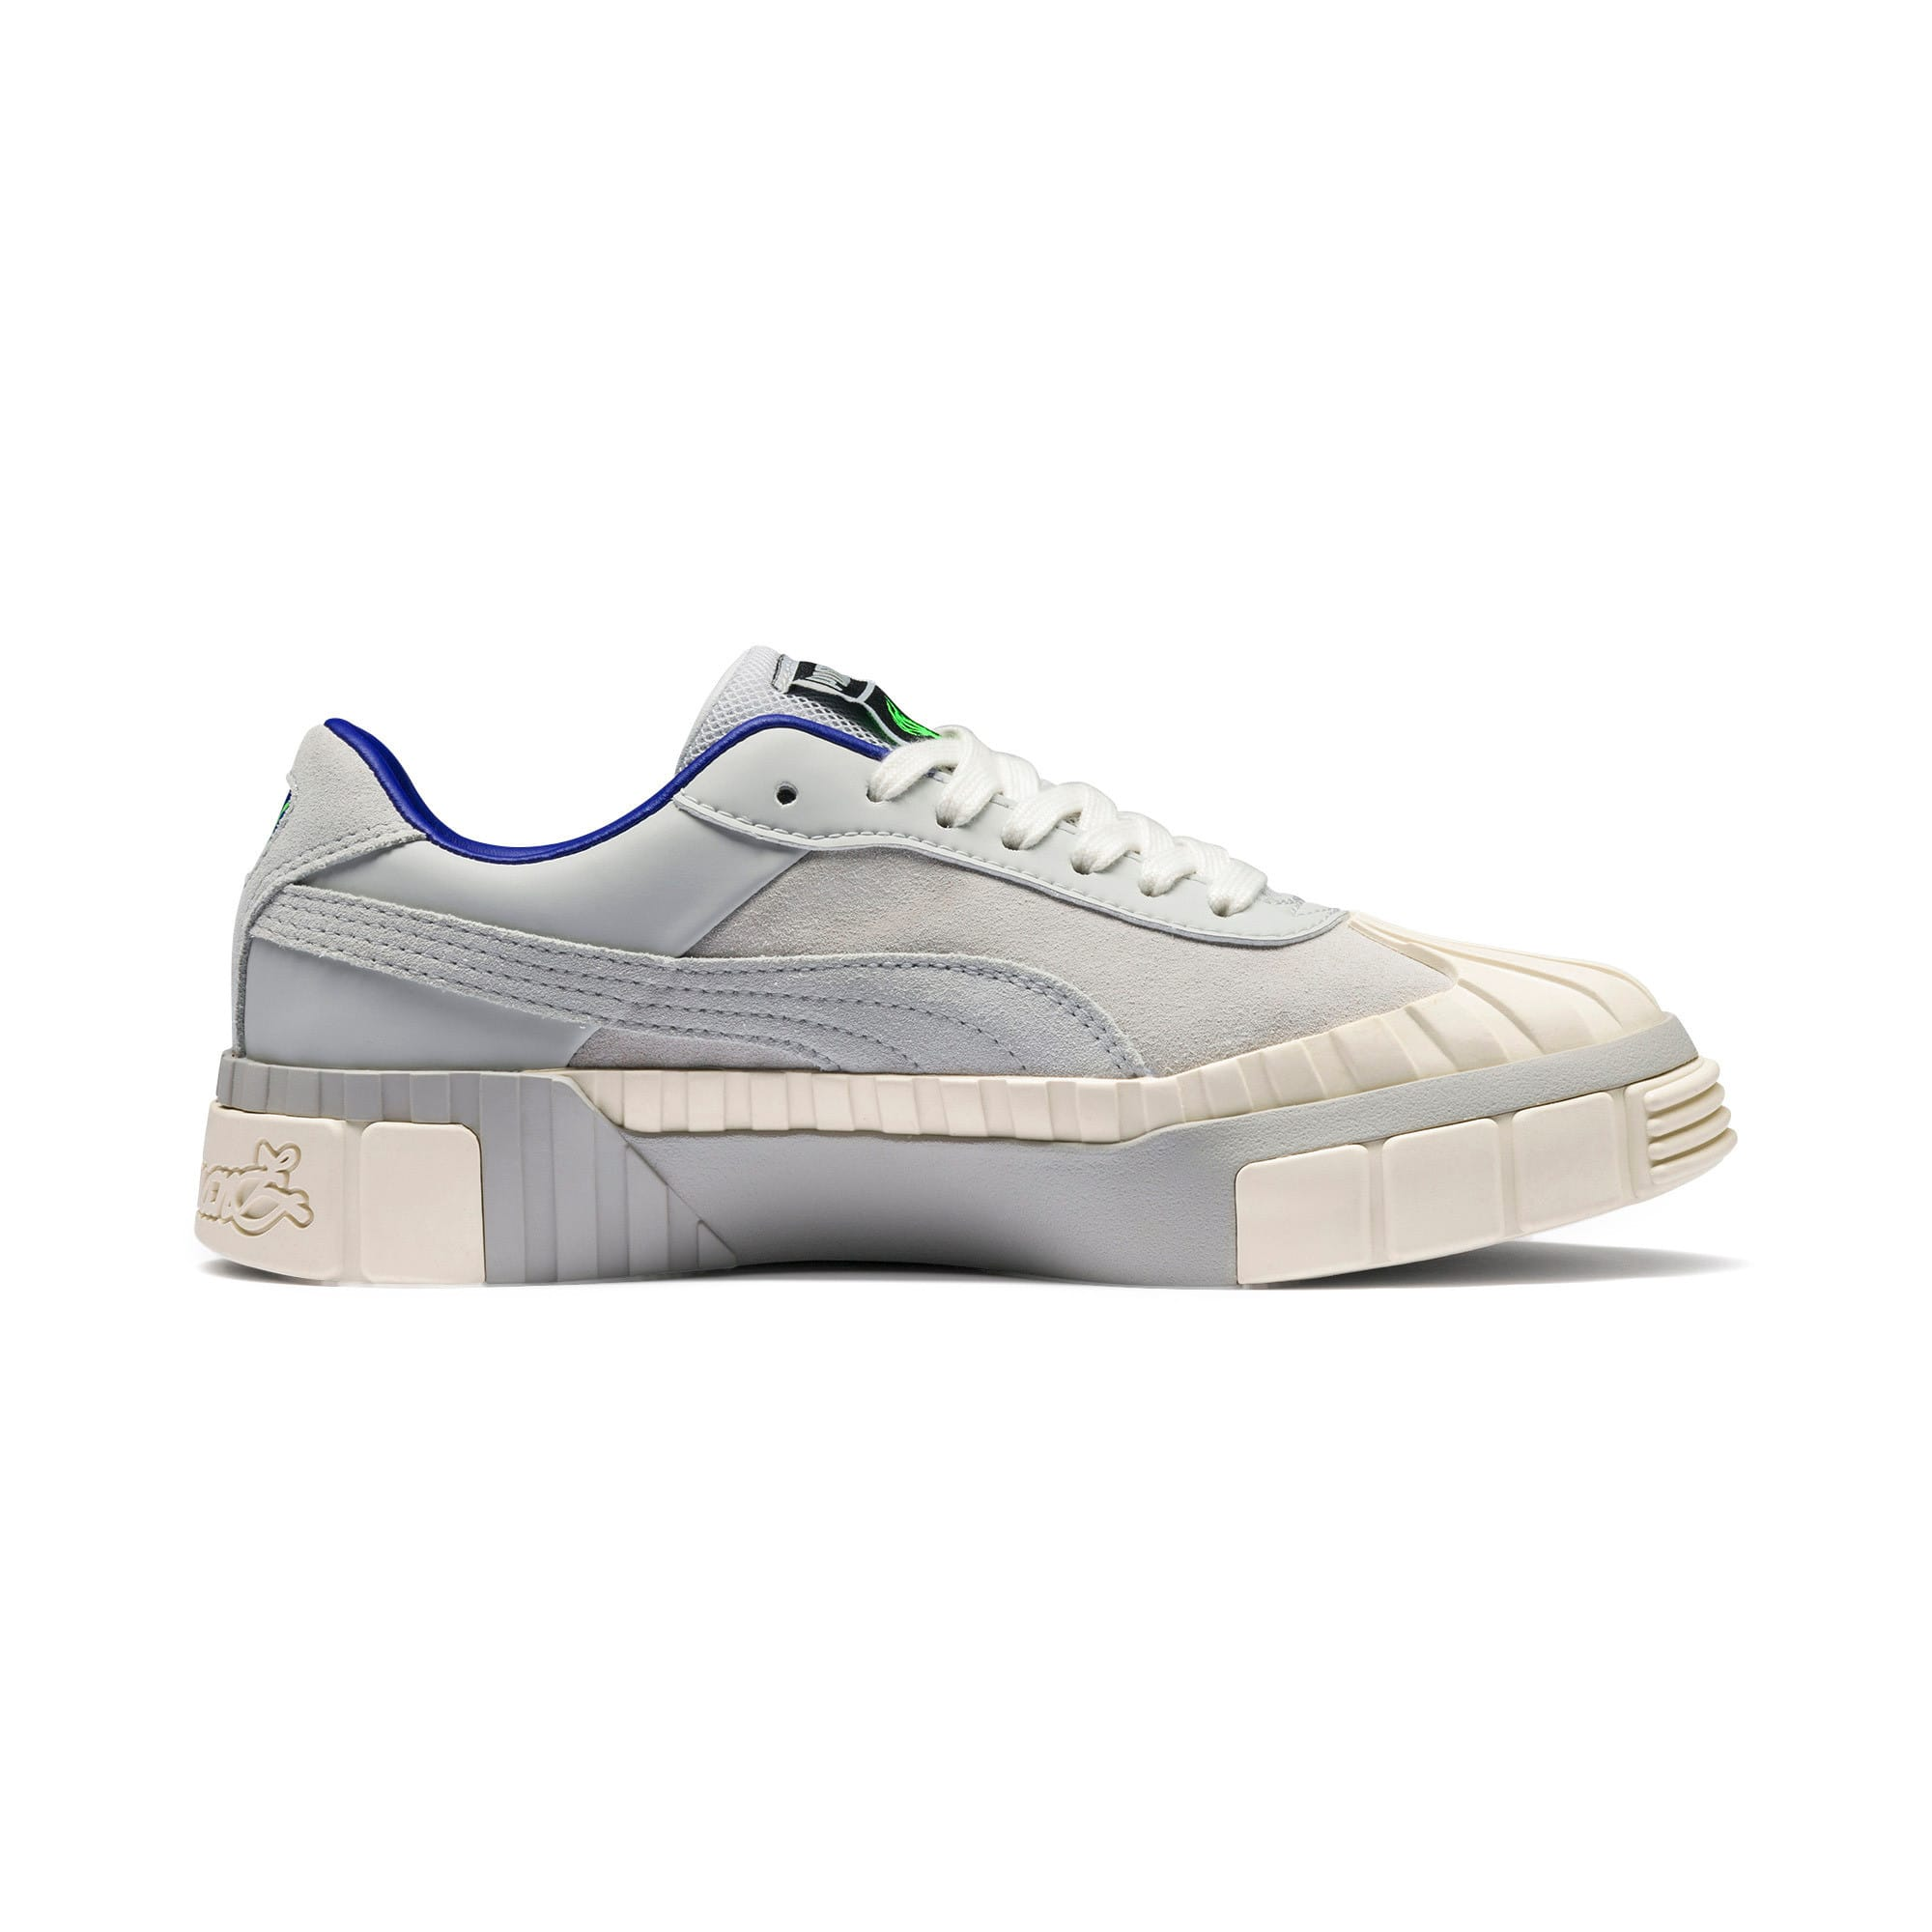 Thumbnail 8 of PUMA x SANKUANZ CALI WOMEN'S, Gray Violet-Whisper White, medium-JPN